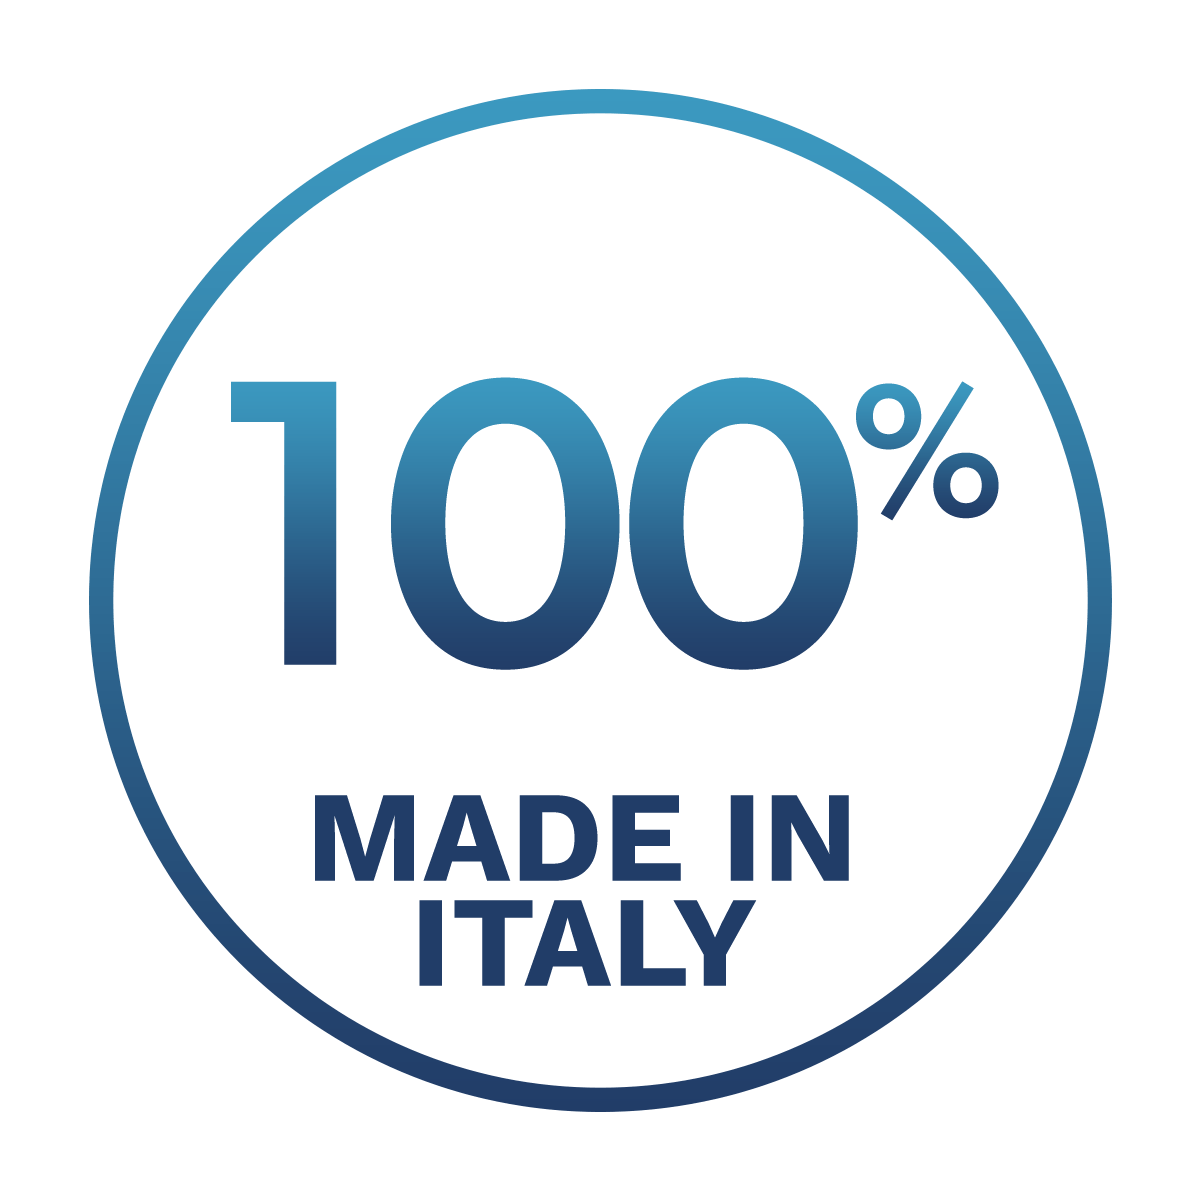 pergole design moderno di qualità made in Italy